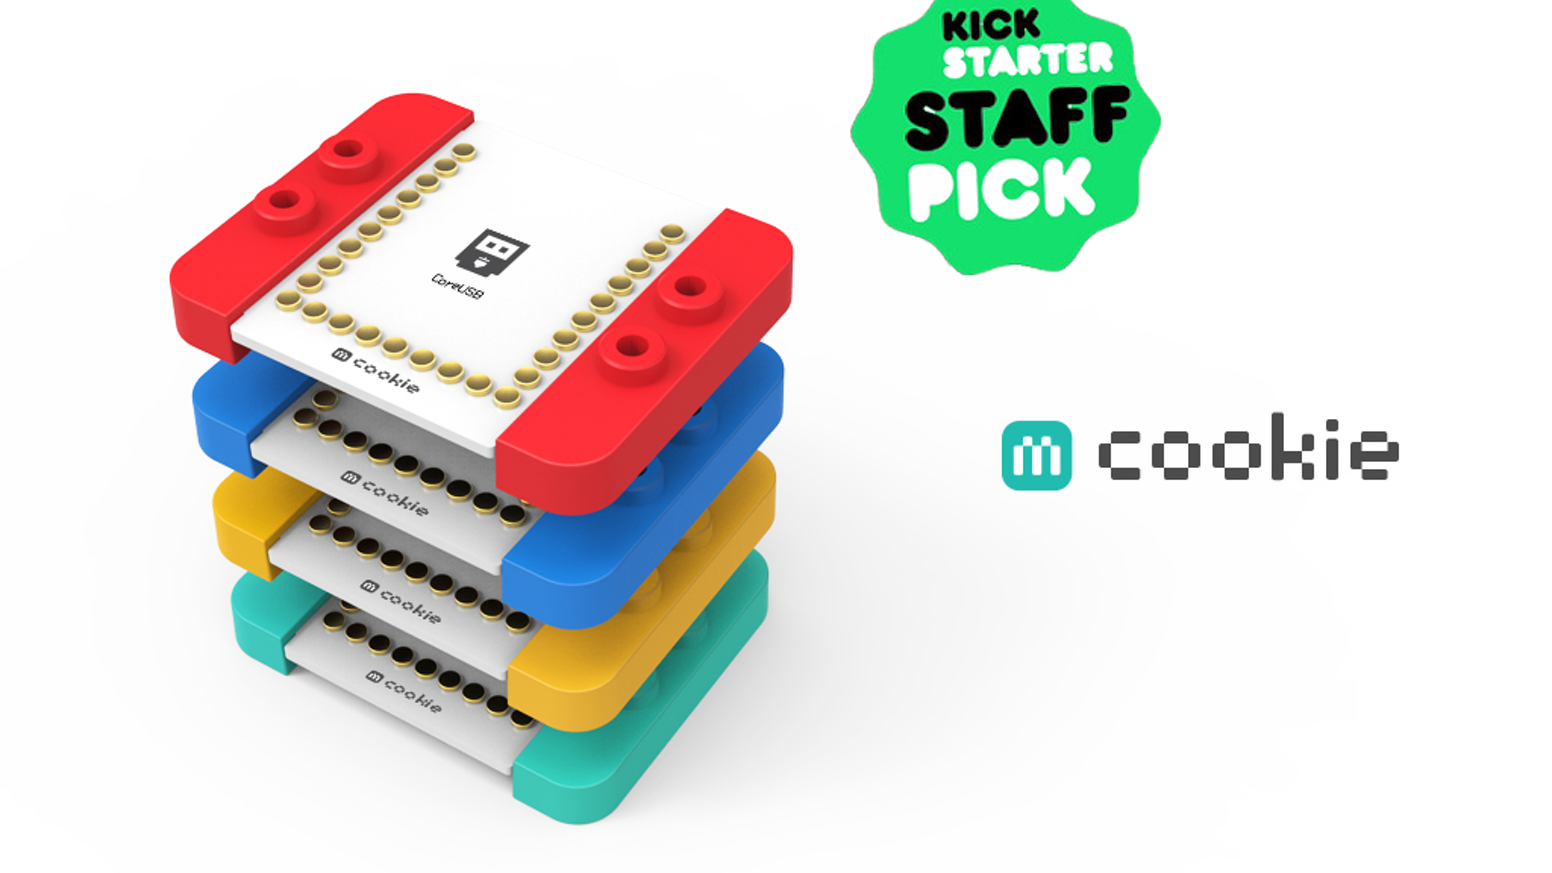 Small, stackable, Arduino-compatible electronics for makers, designers, engineers, students and curious tinkerers of all ages.